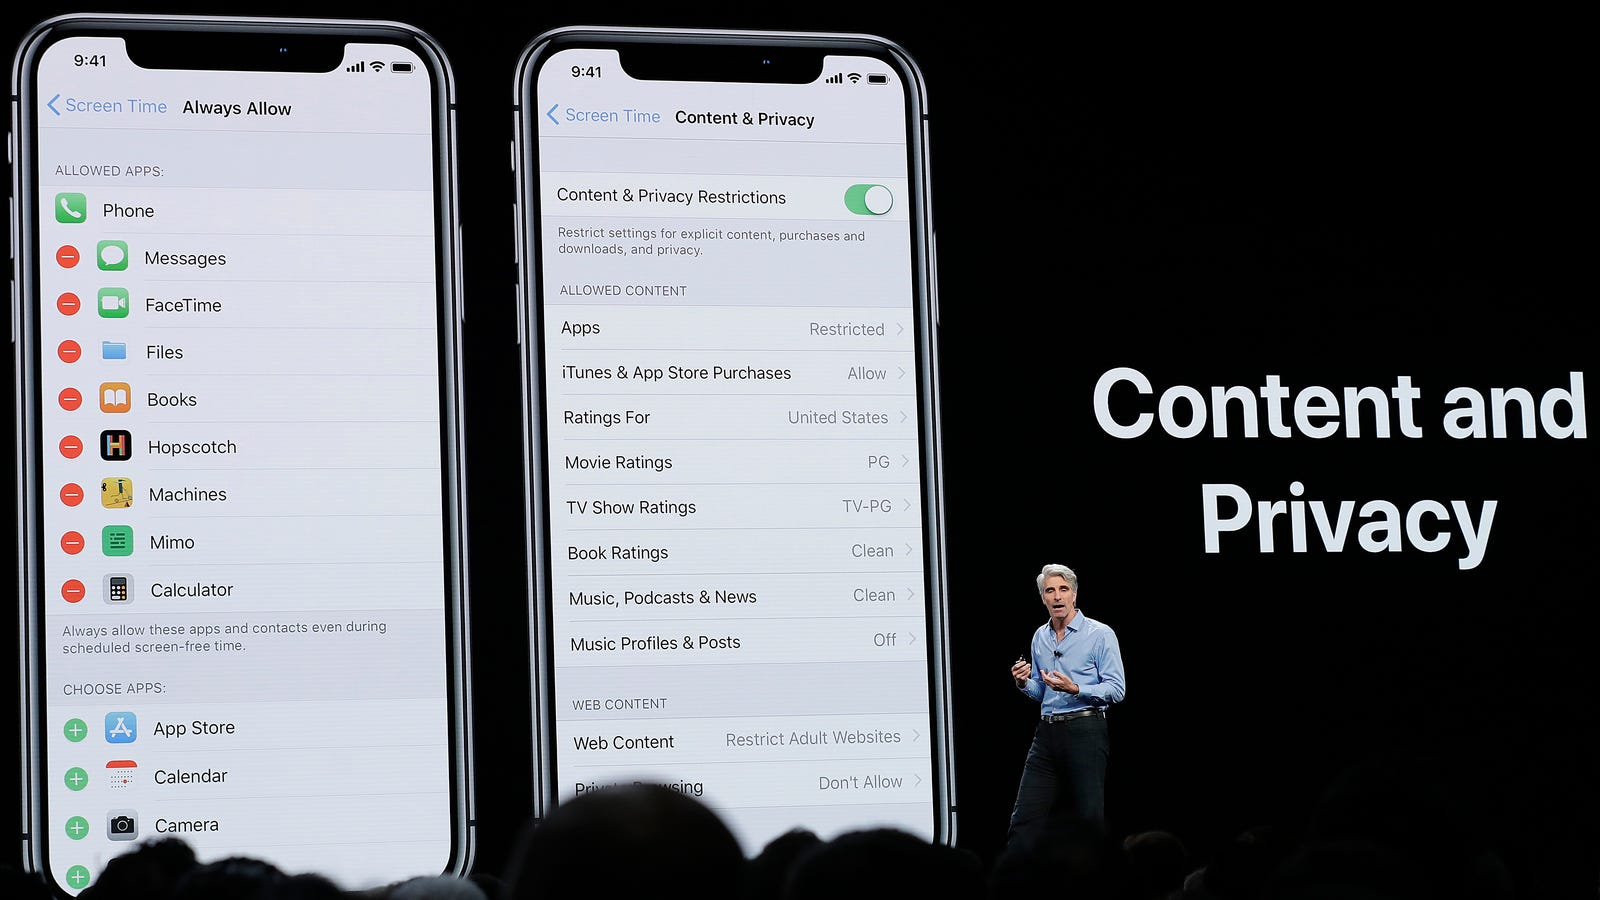 QnA VBage Apple Sure Is Riding a Very High Privacy Horse in Vegas